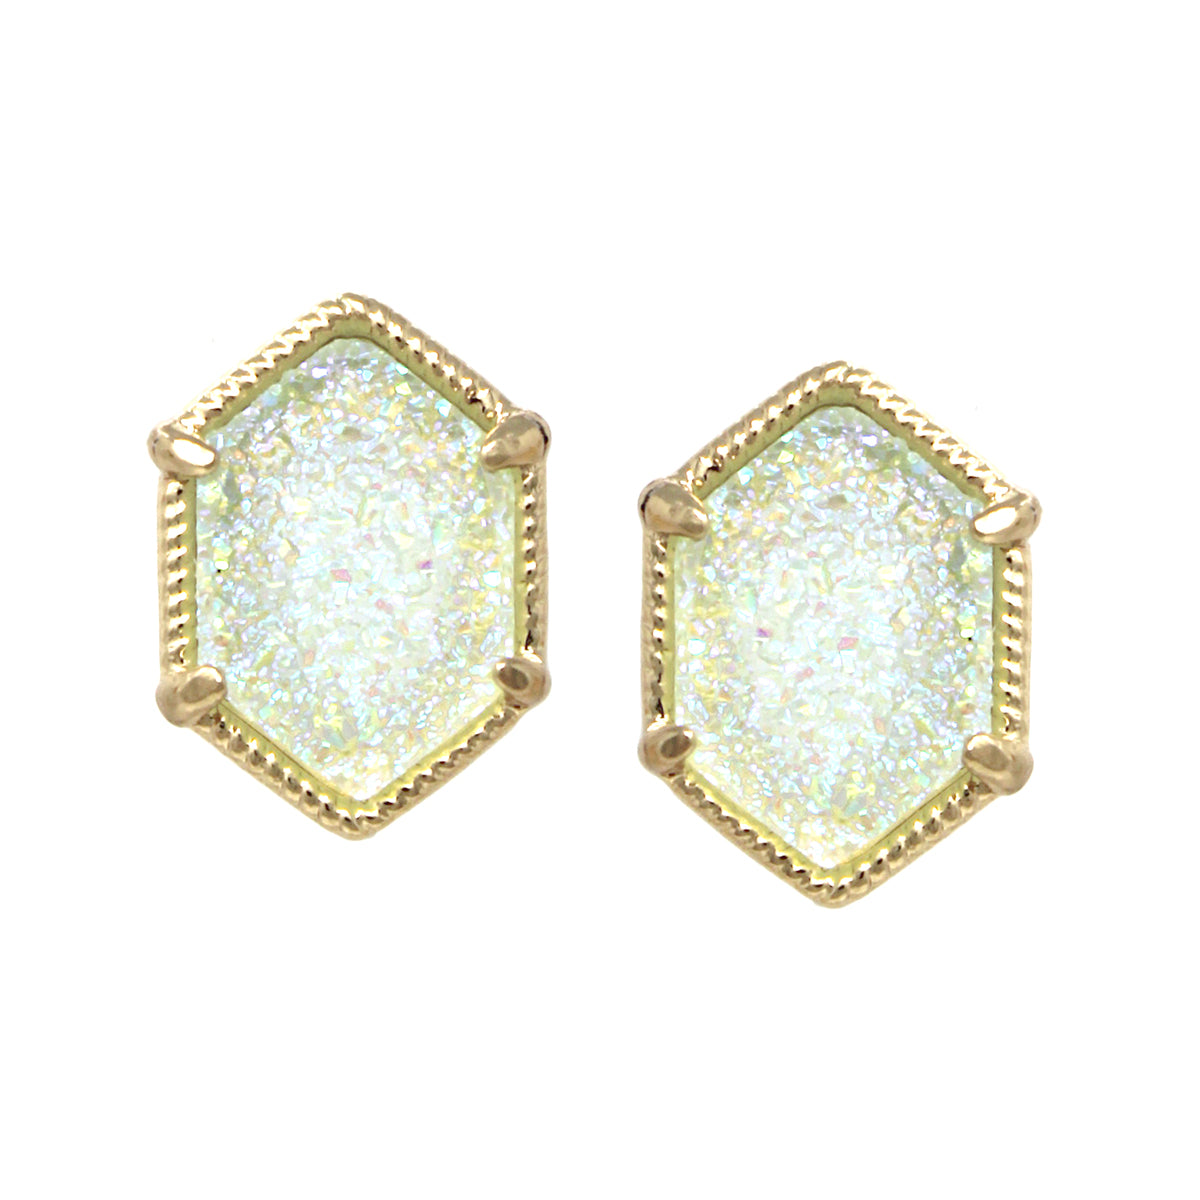 Metal Framed Hexagon Druzy Stone Stud Earrings